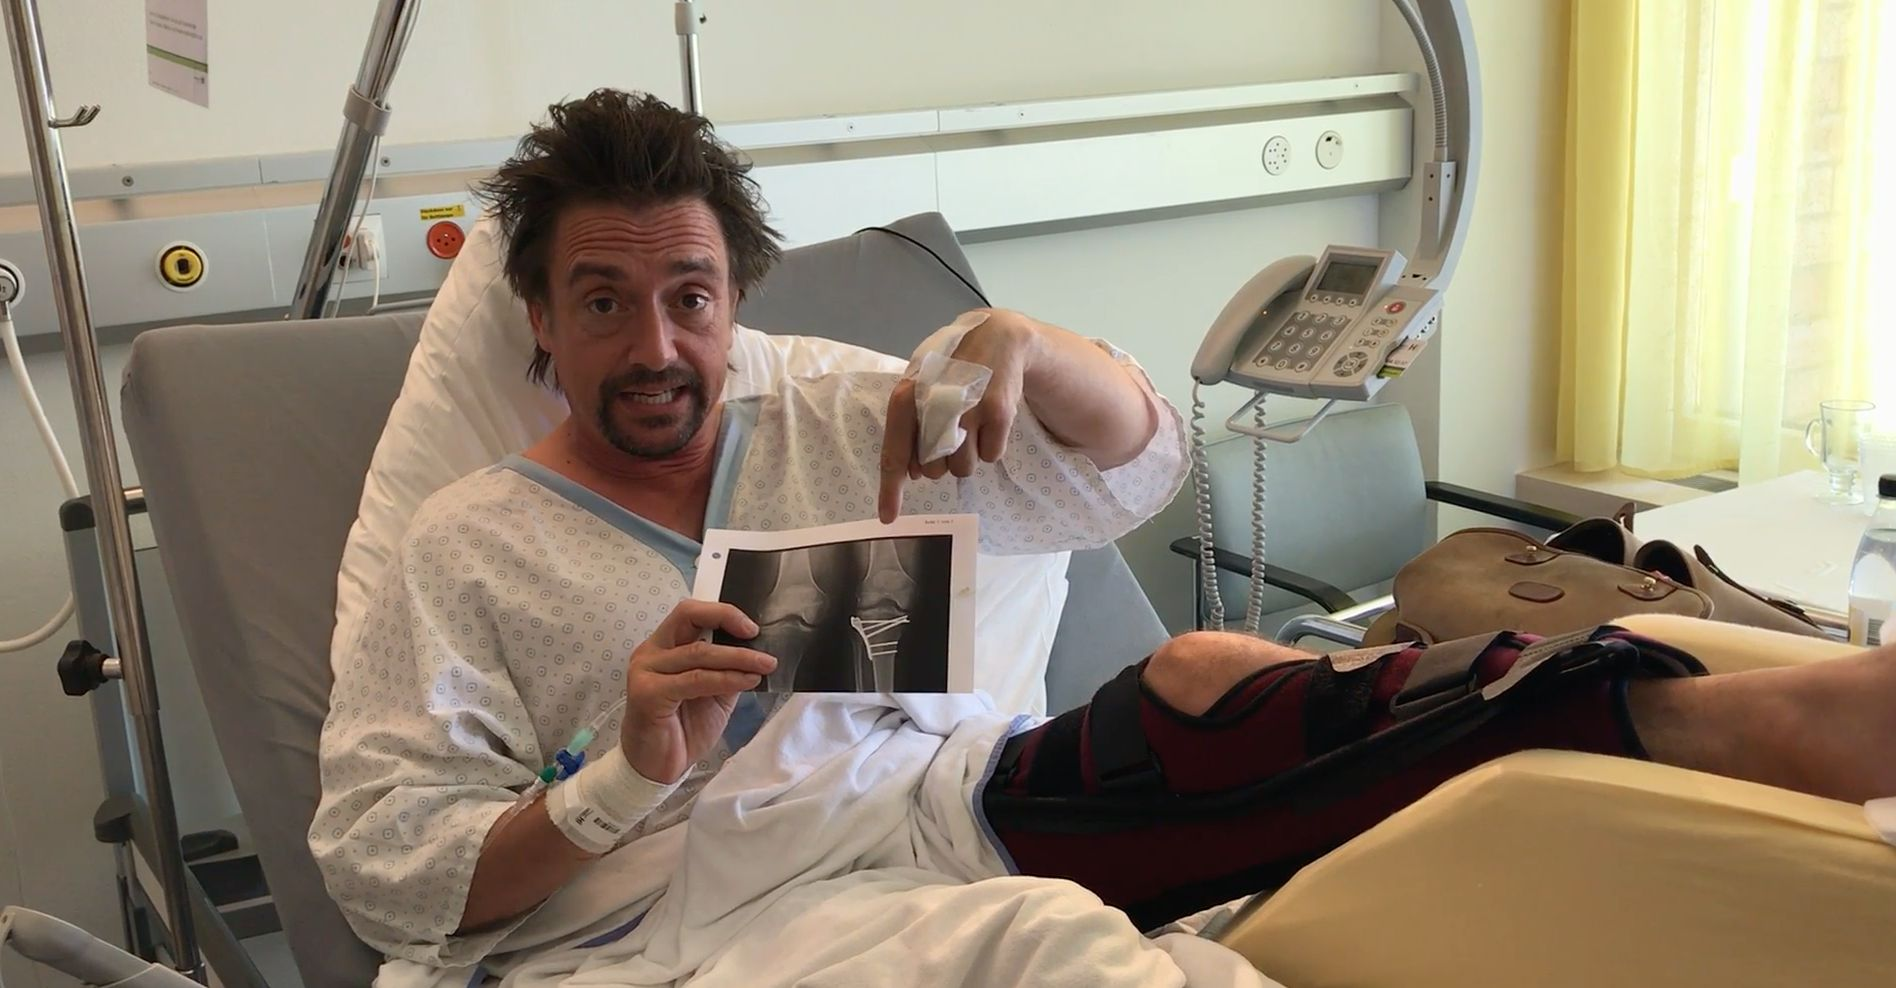 Richard Hammond Crash: 'The Grand Tour' Host Apologises To Wife In Hospital Bed Video